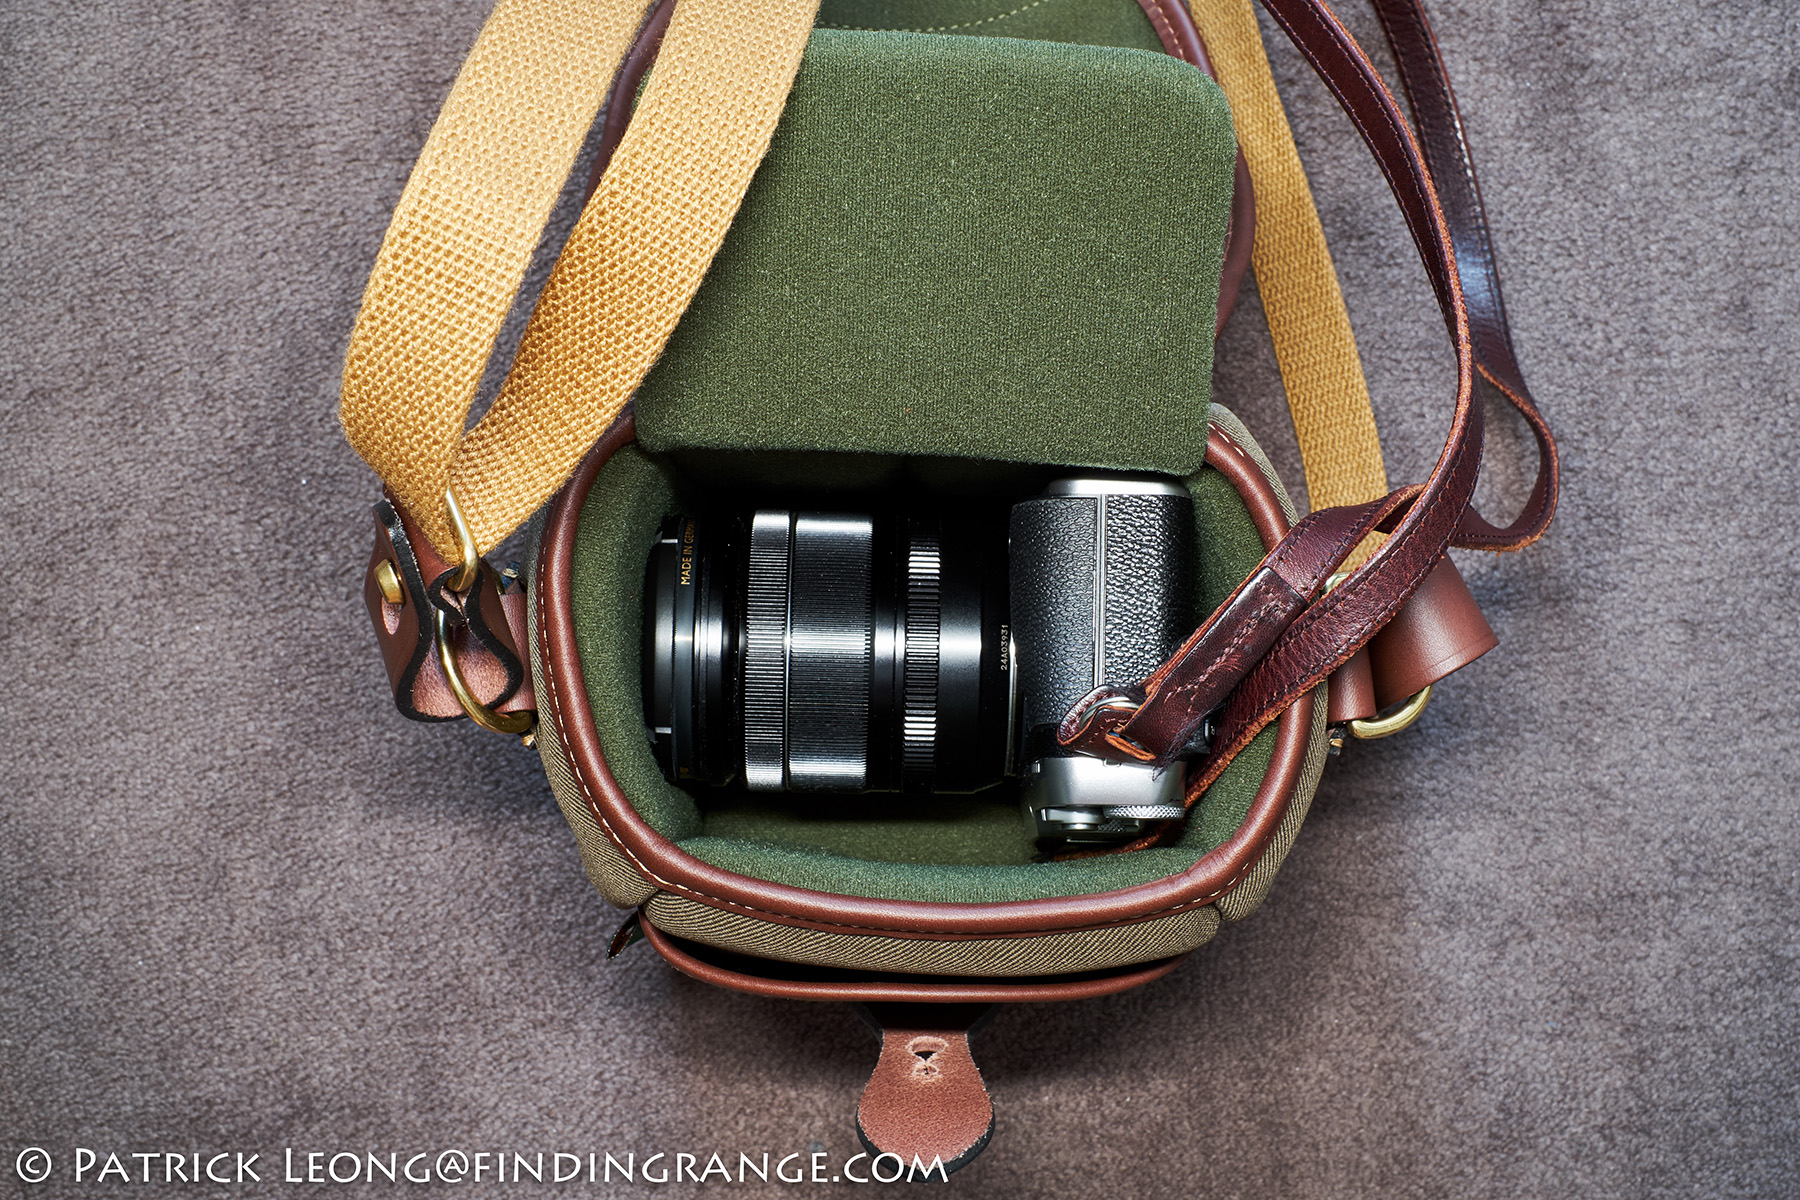 Billingham 72 Camera Bag Review Digital Burgundy Canvas Chocolate Leather The Divider Is In Here As Well I Have X E3 With Xf 18 55mm Zoom Attached This Photo Its Actually A Perfect Fit